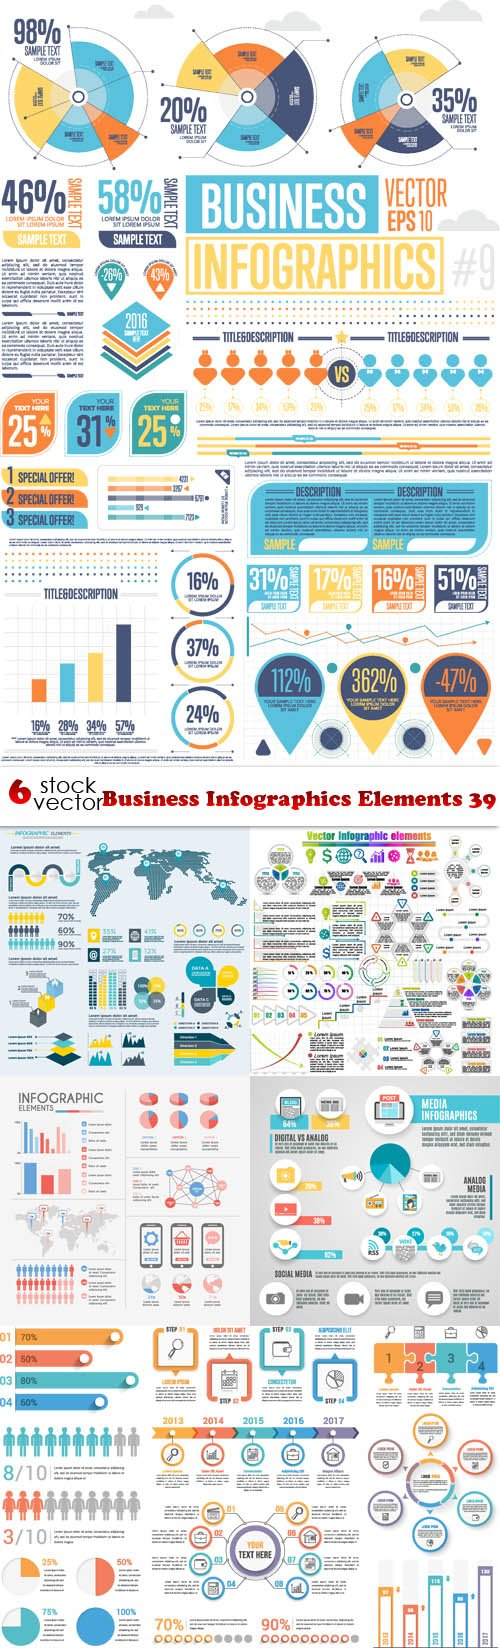 Vectors - Business Infographics Elements 39